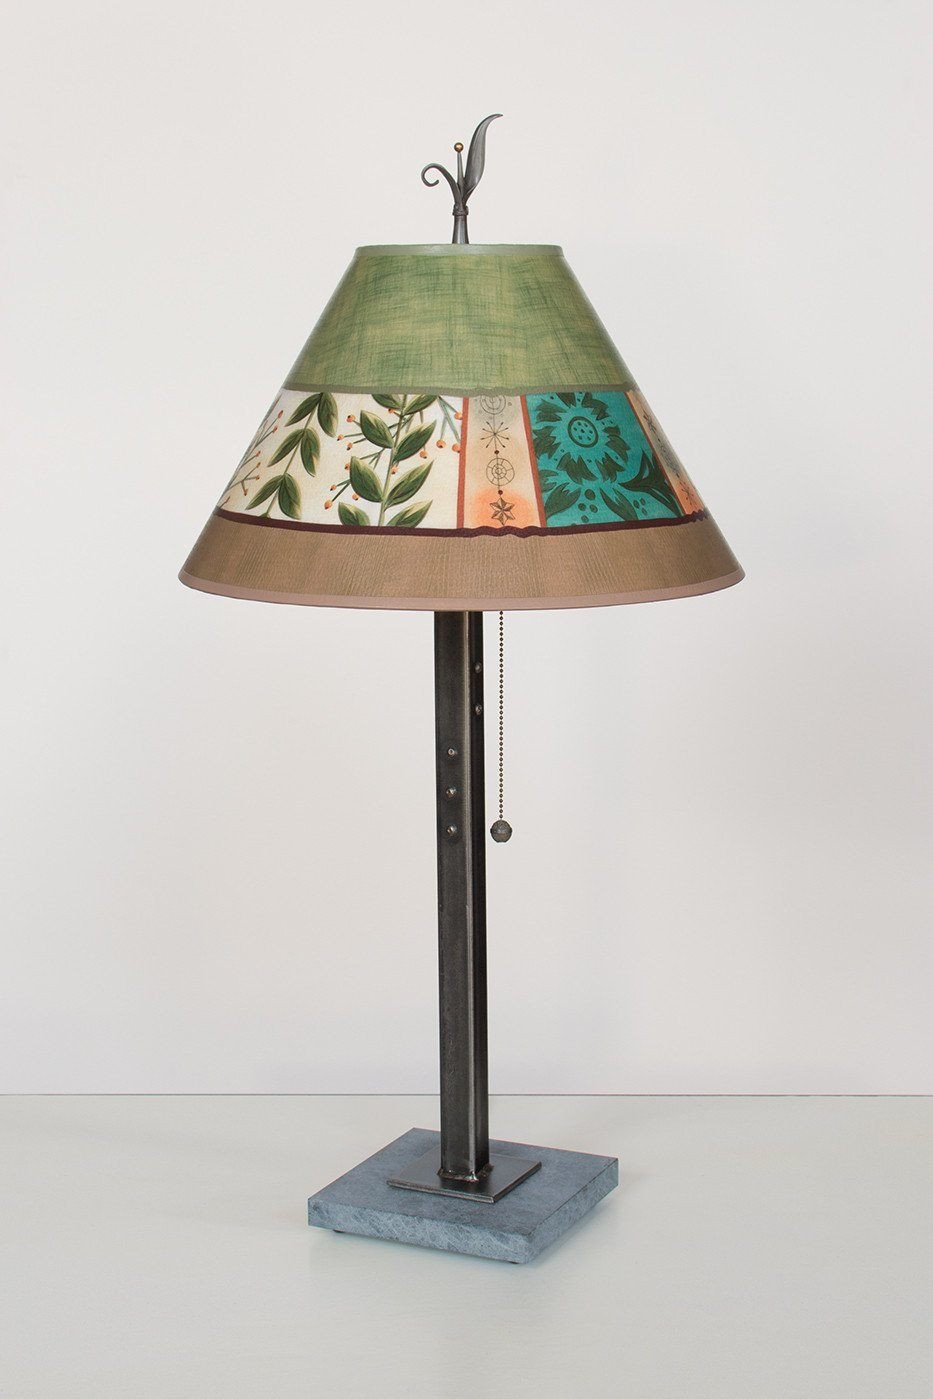 Steel Table Lamp on Marble with Medium Conical Shade in Spring Medley Apple Lit